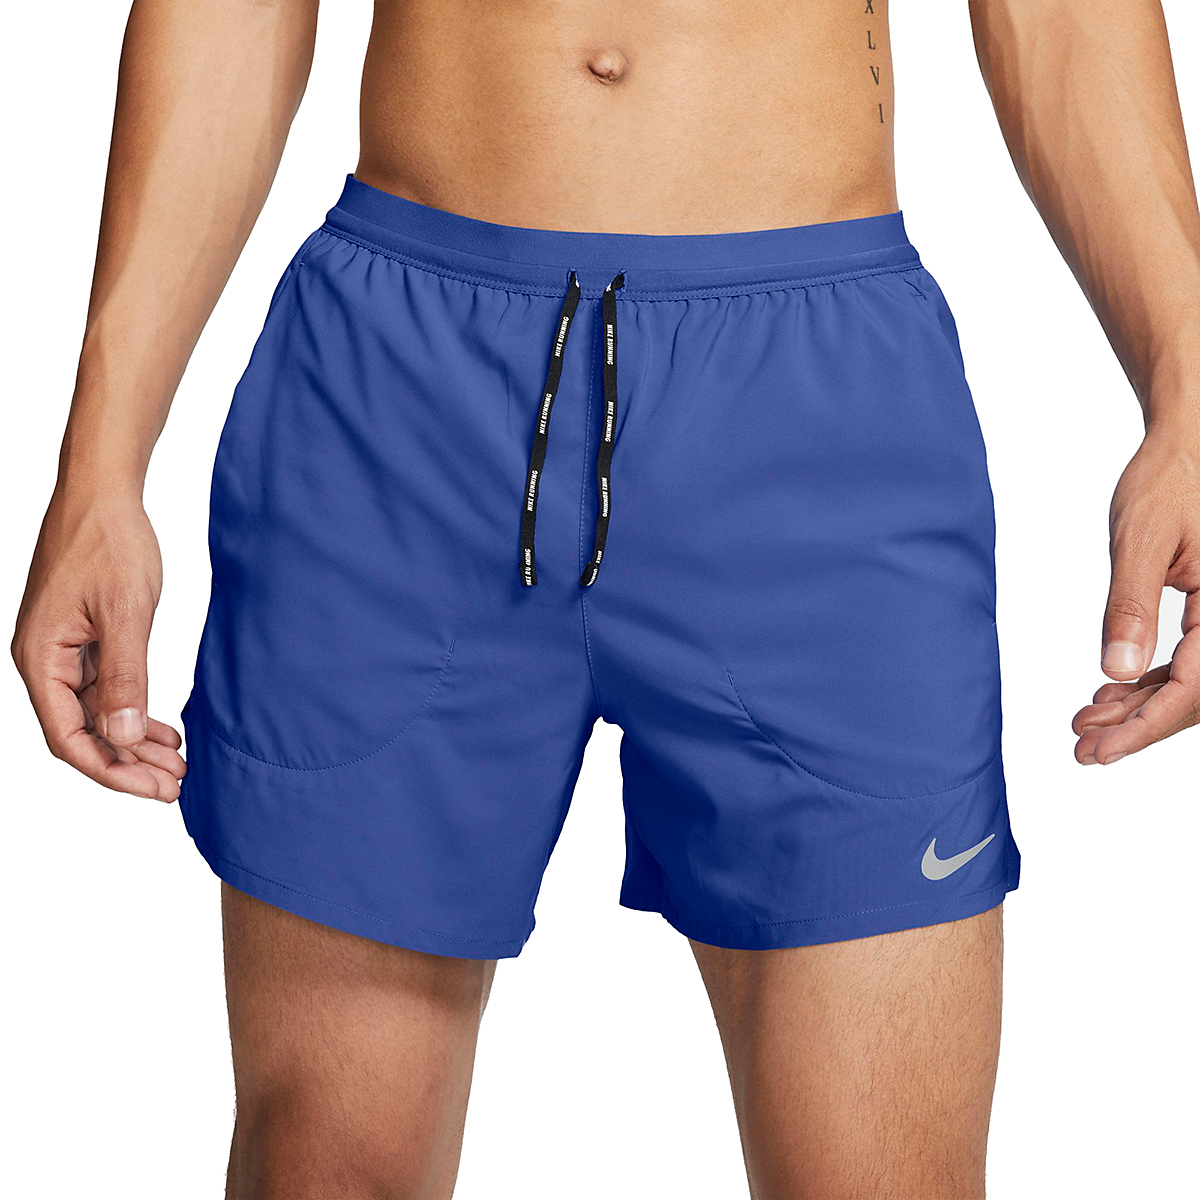 """Men's Nike Flex Stride 5"""" Brief Running Shorts - Color: Astronomy Blue - Size: S, Astronomy Blue, large, image 1"""